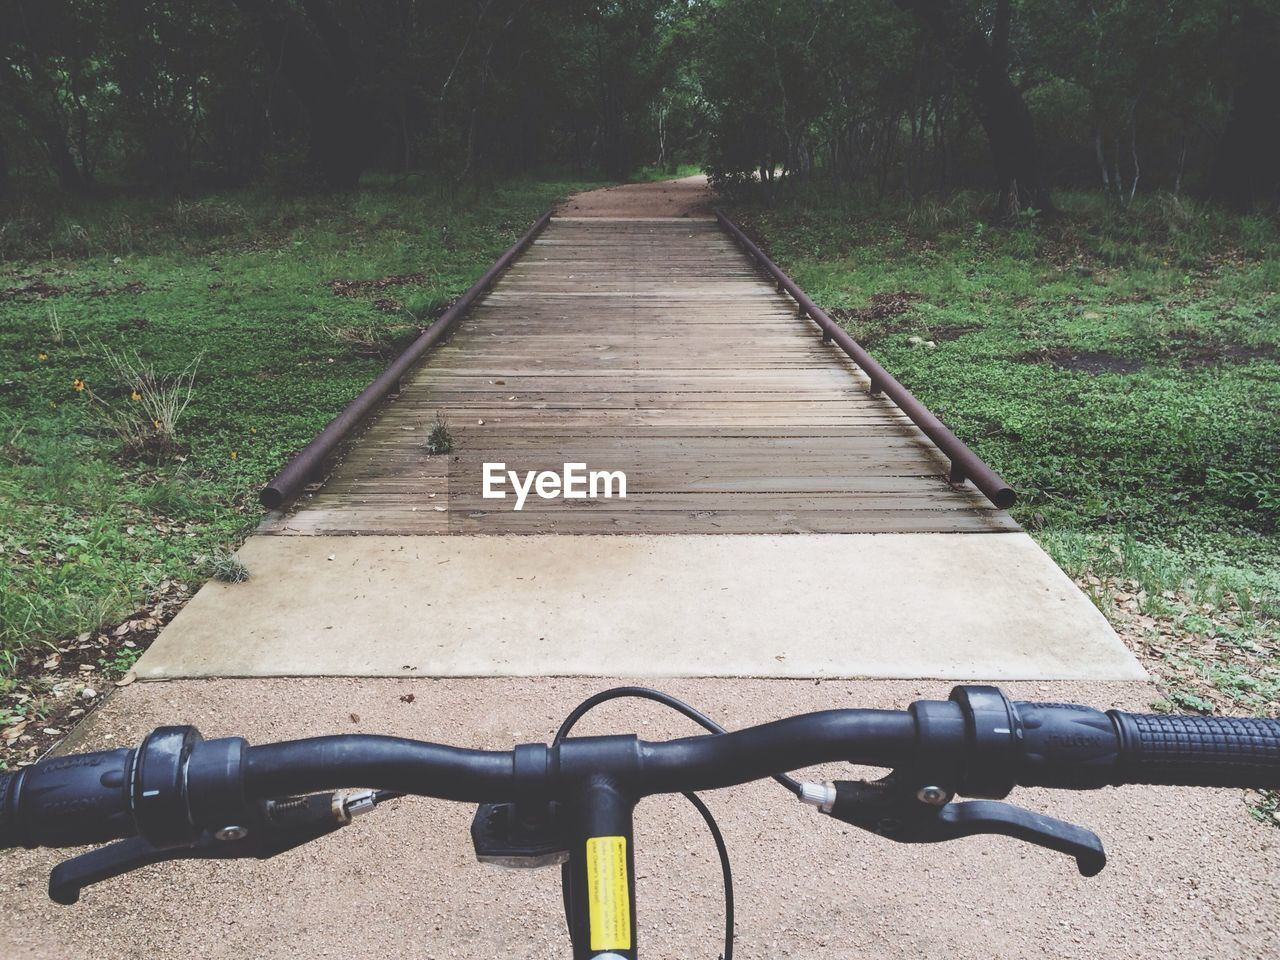 Symmetrical View Of Concrete Footpath In Park, Lawn And Trees, Bicycle Handlebars In Foreground